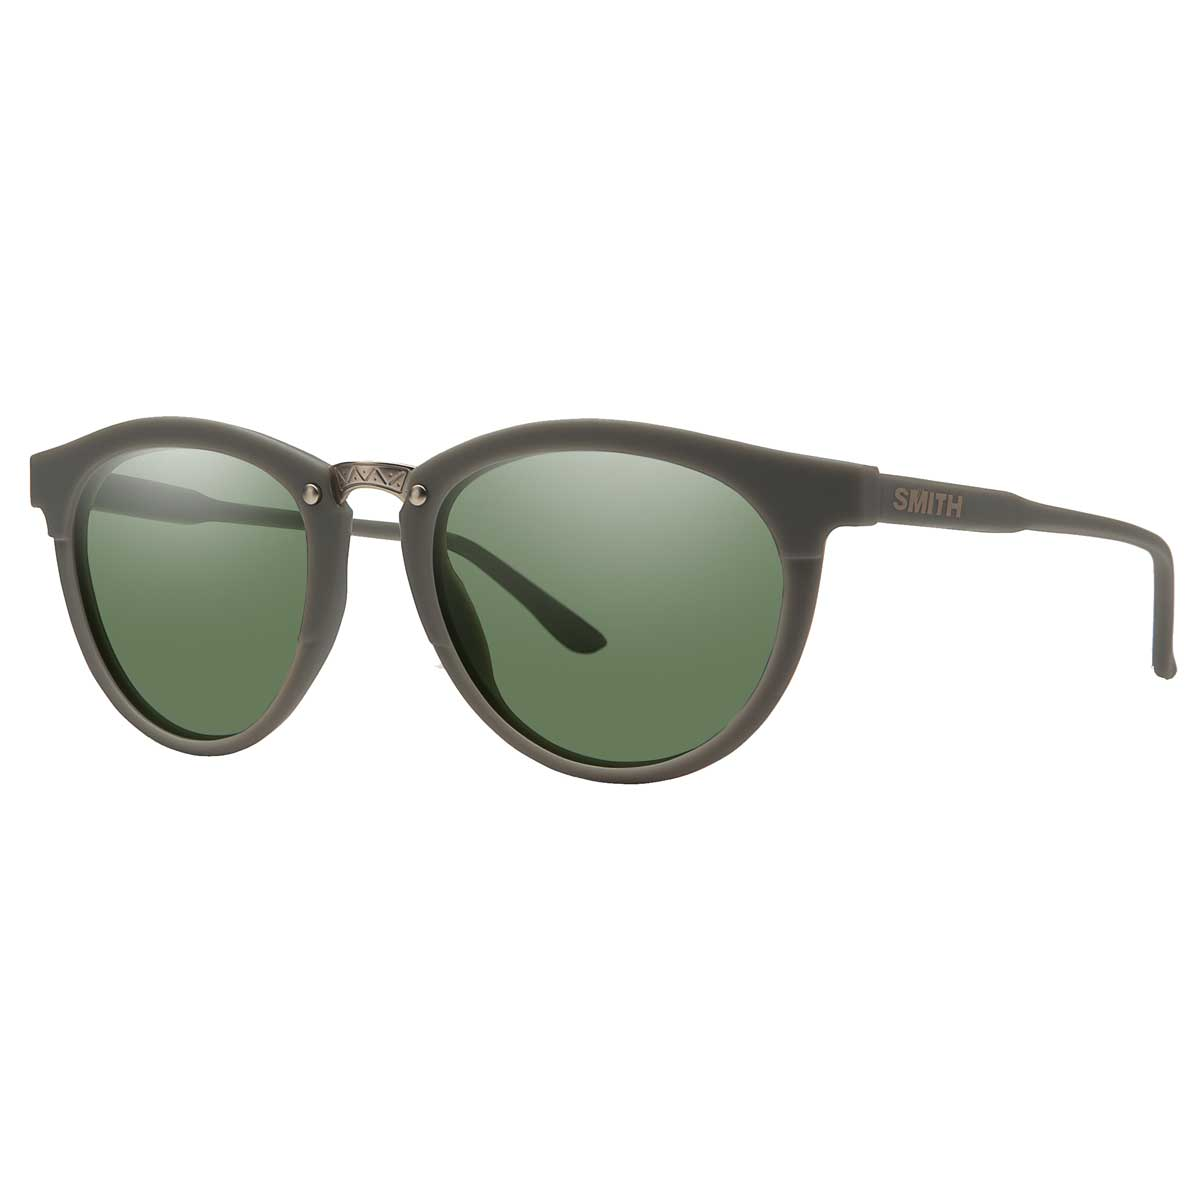 Smith Questa sunglasses in Matte Sage with Grey Green